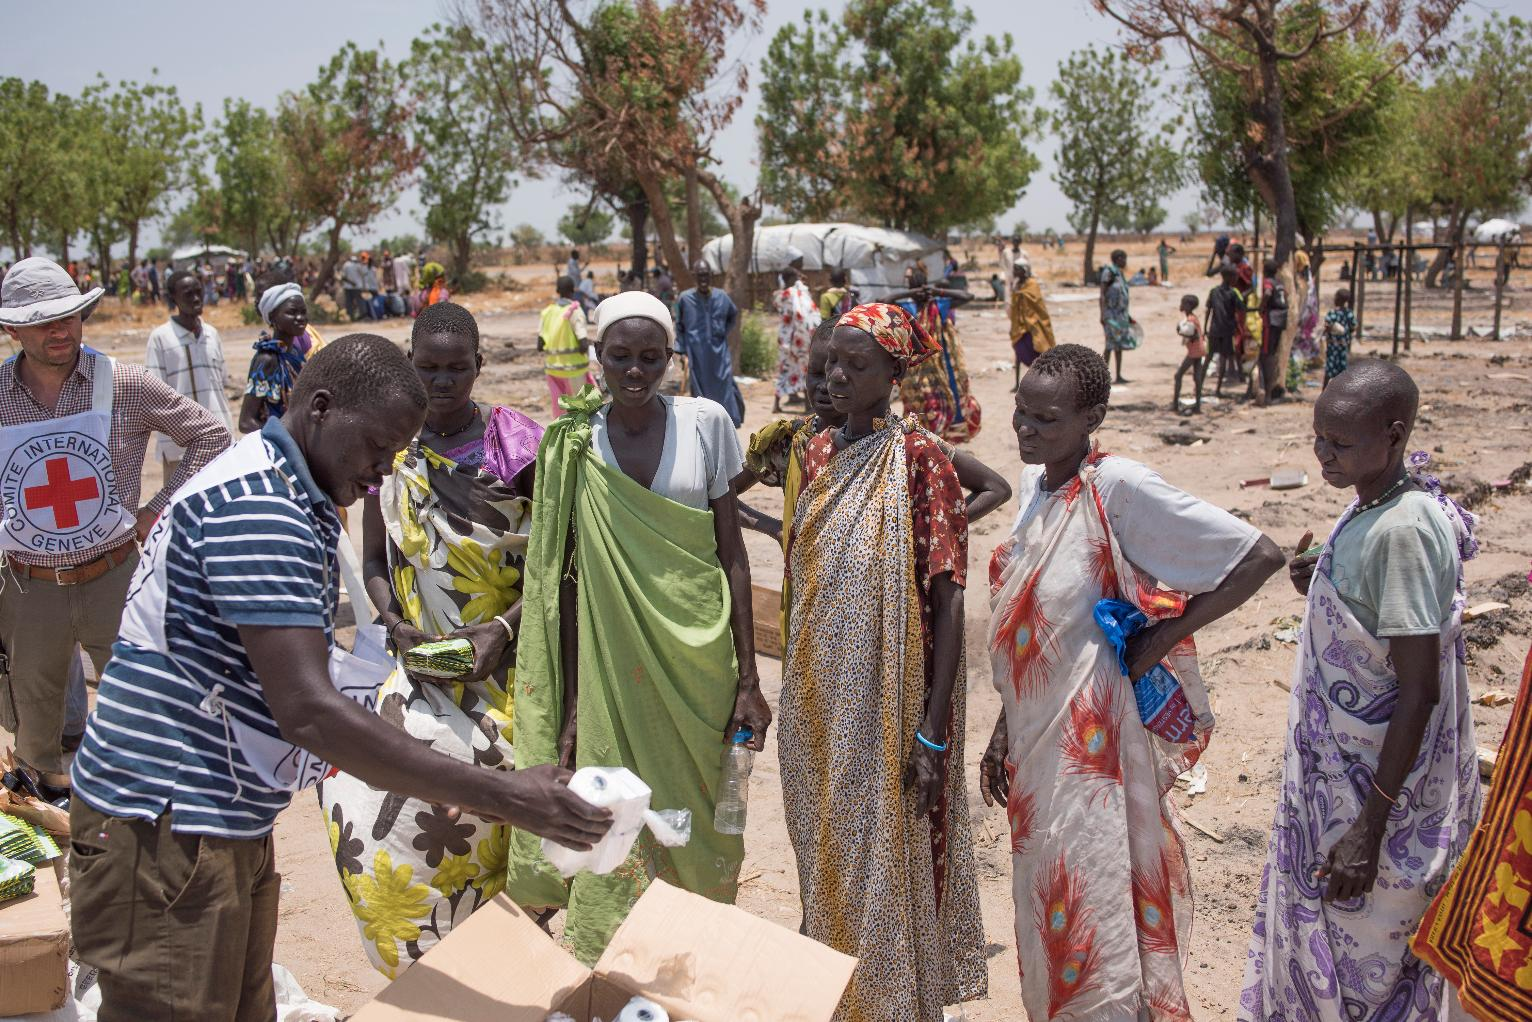 darfur senior personals Amid reports that the islamist regime in khartoum may finally be taking some action to curb a scorched-earth counterinsurgency campaign that has forced more than a million people from their homes in the western province of darfur, amnesty international has released a new report accusing government.